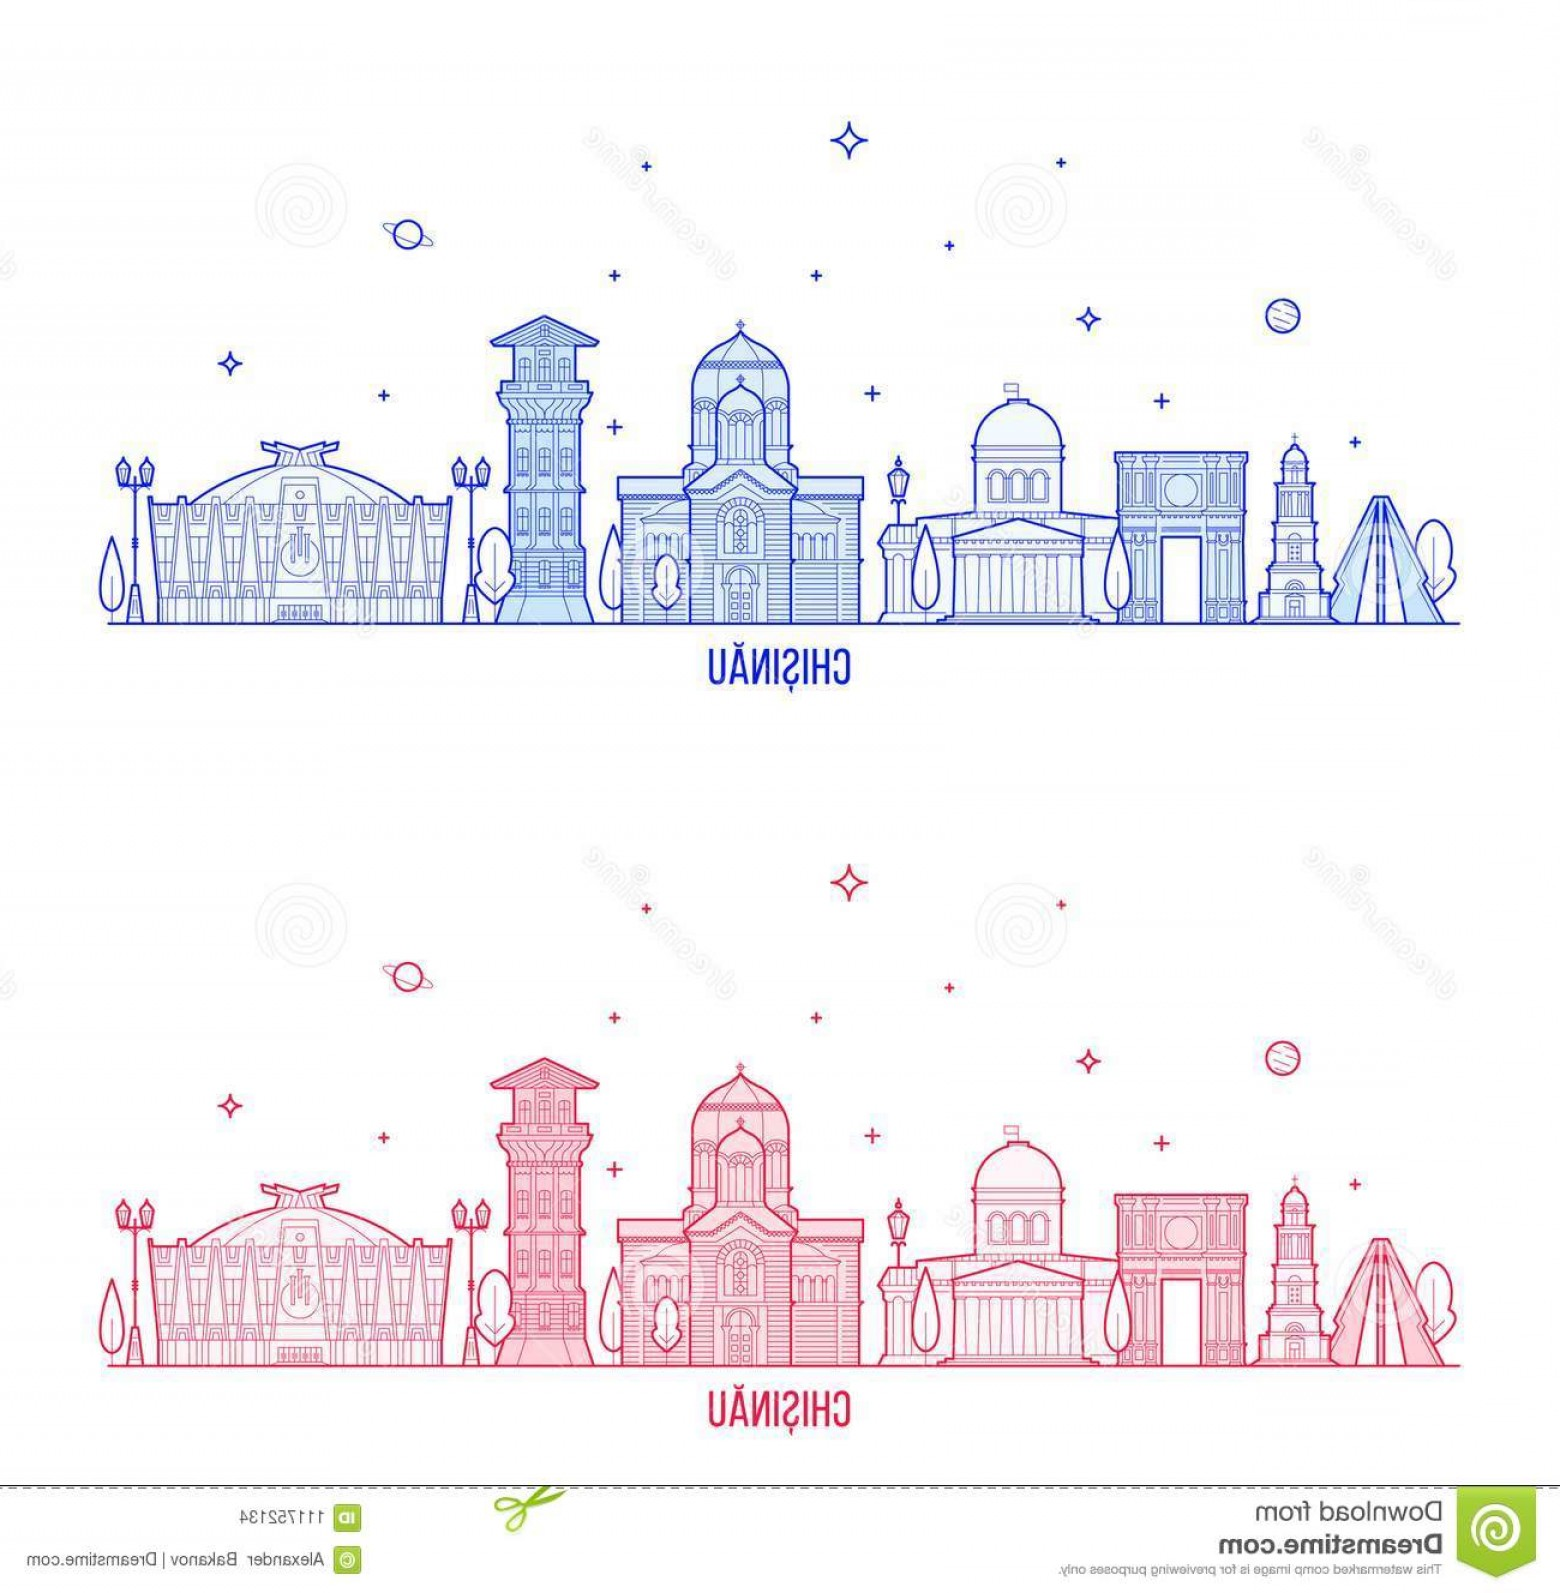 City Building Vector Free Download: Chisinau Skyline Moldova City Buildings Vector Chisinau Skyline Moldova Illustration Represents City Its Most Image